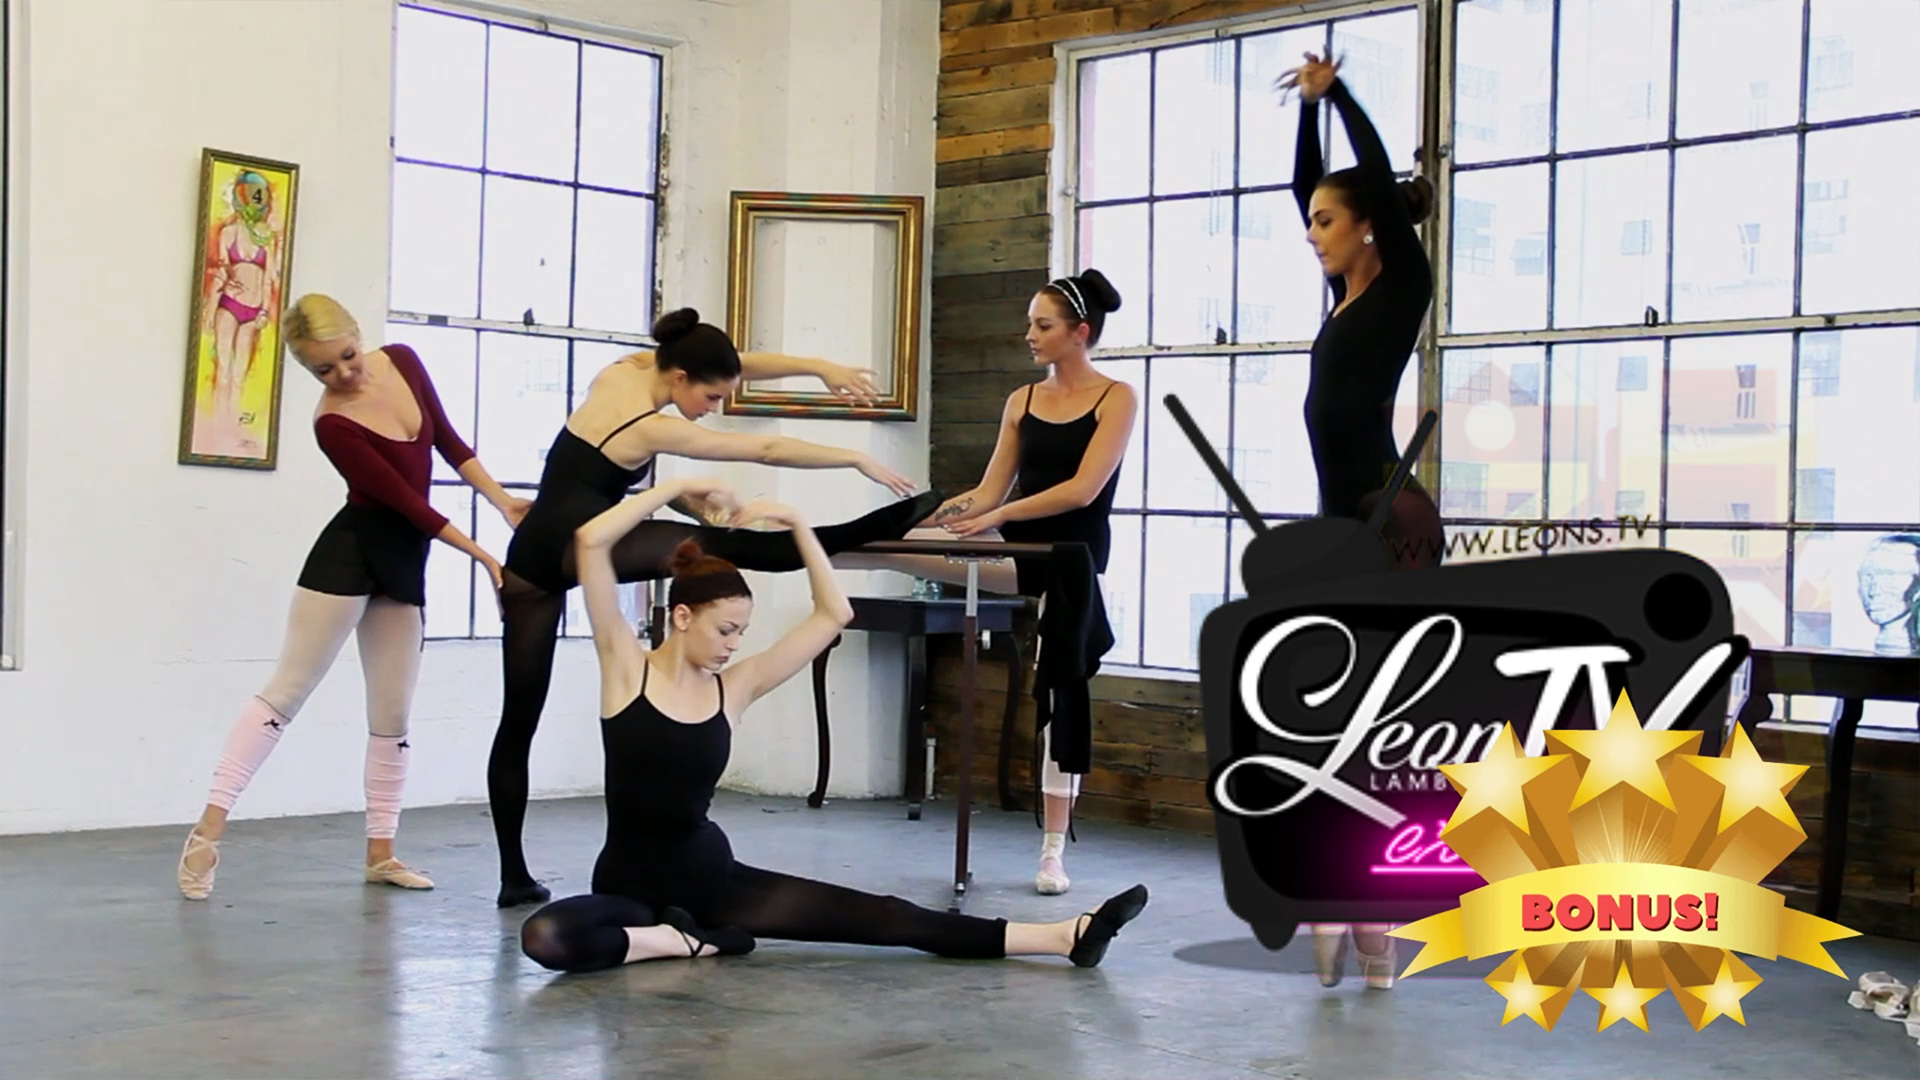 Tight Teens of Ballerina School – a Very SPECIAL BONUS Scene with lots of twists and surprises